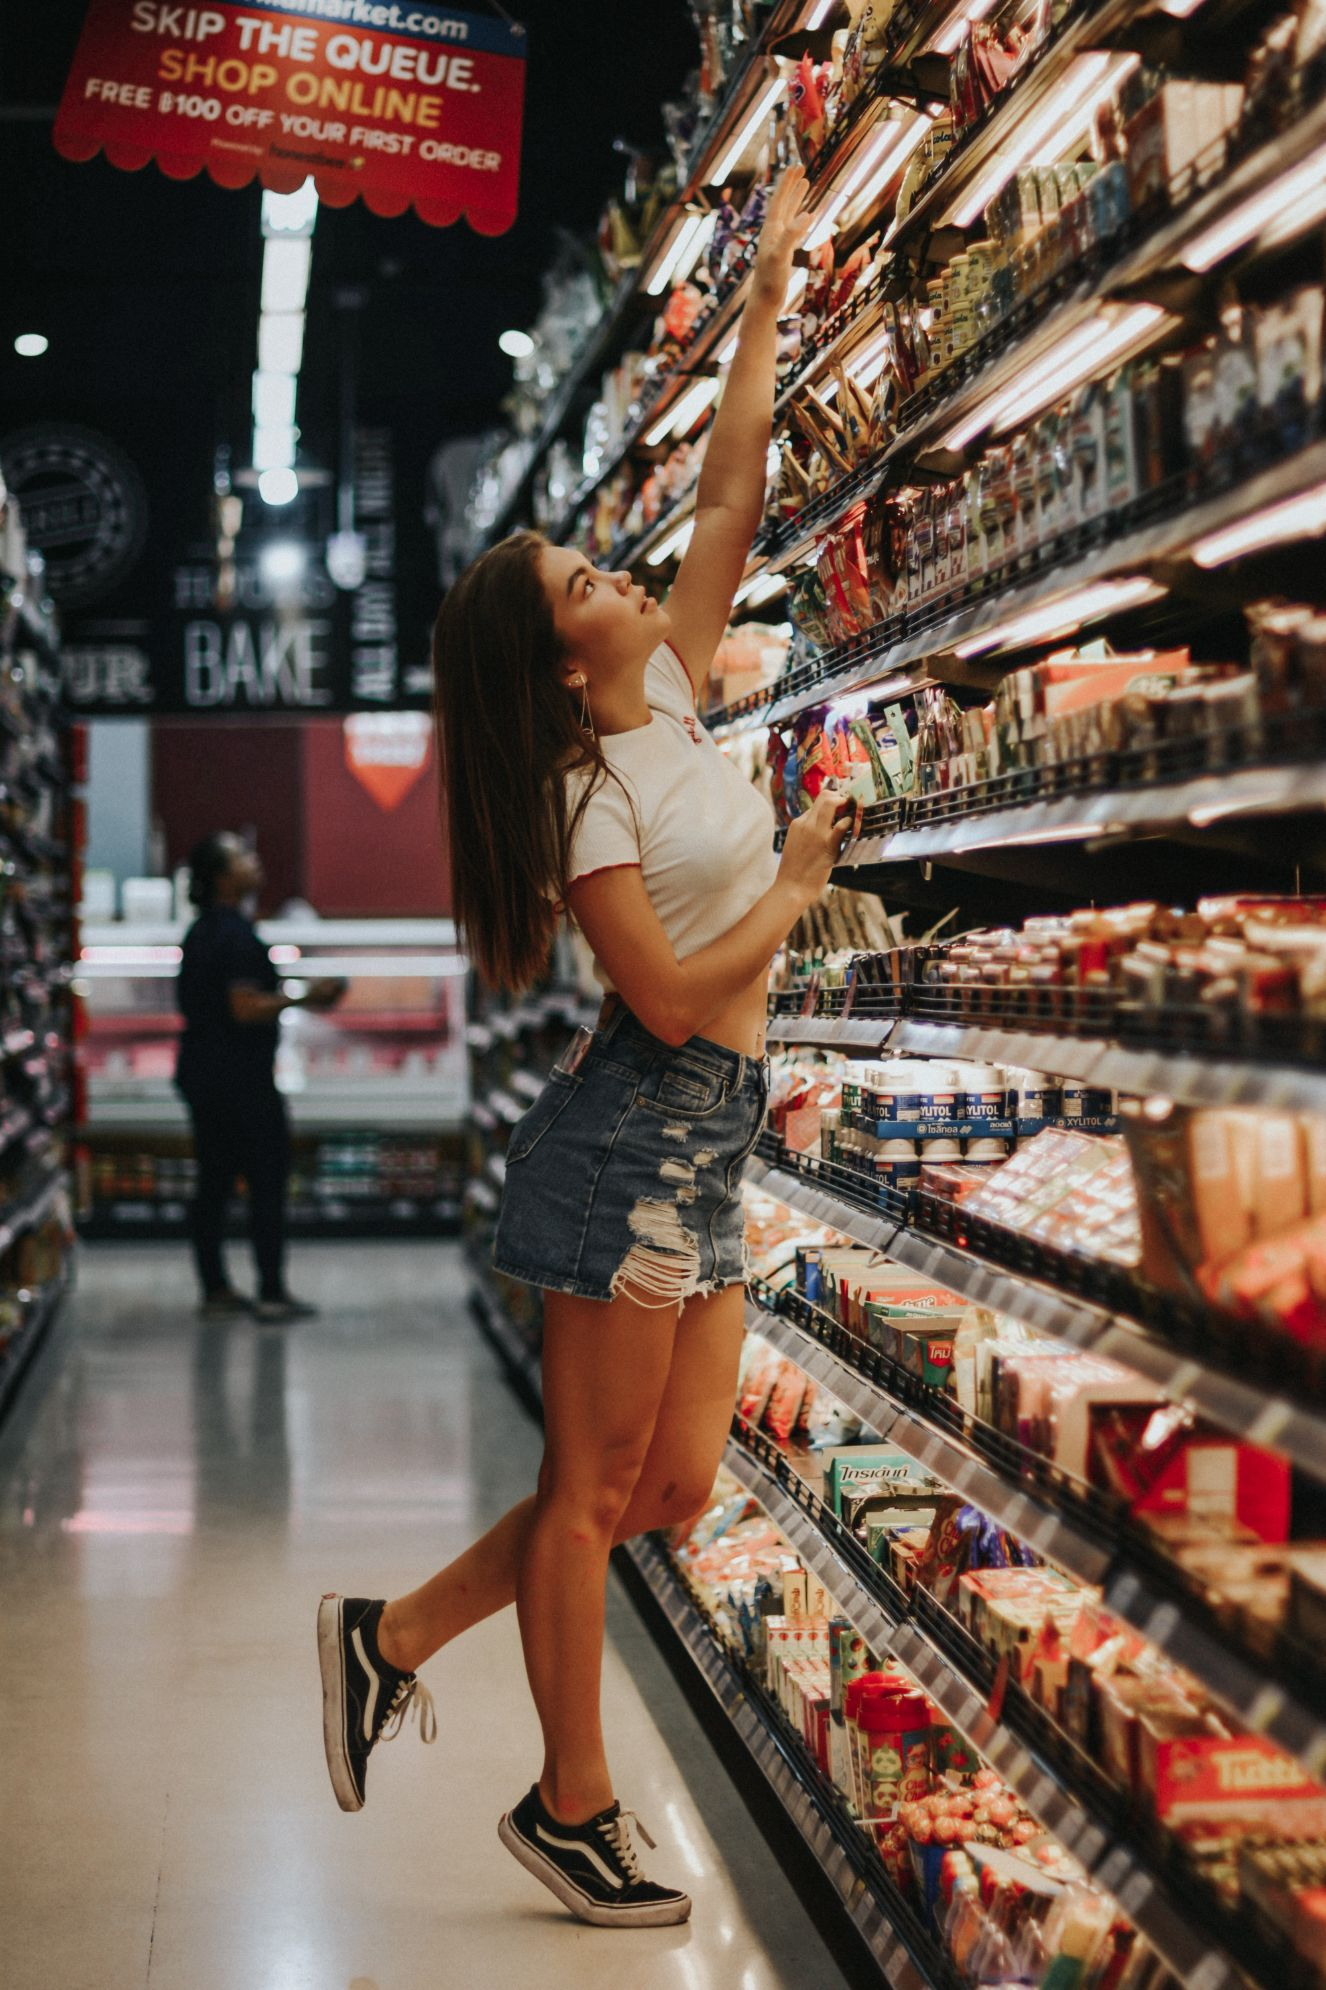 girl reaching for food in a grocery story